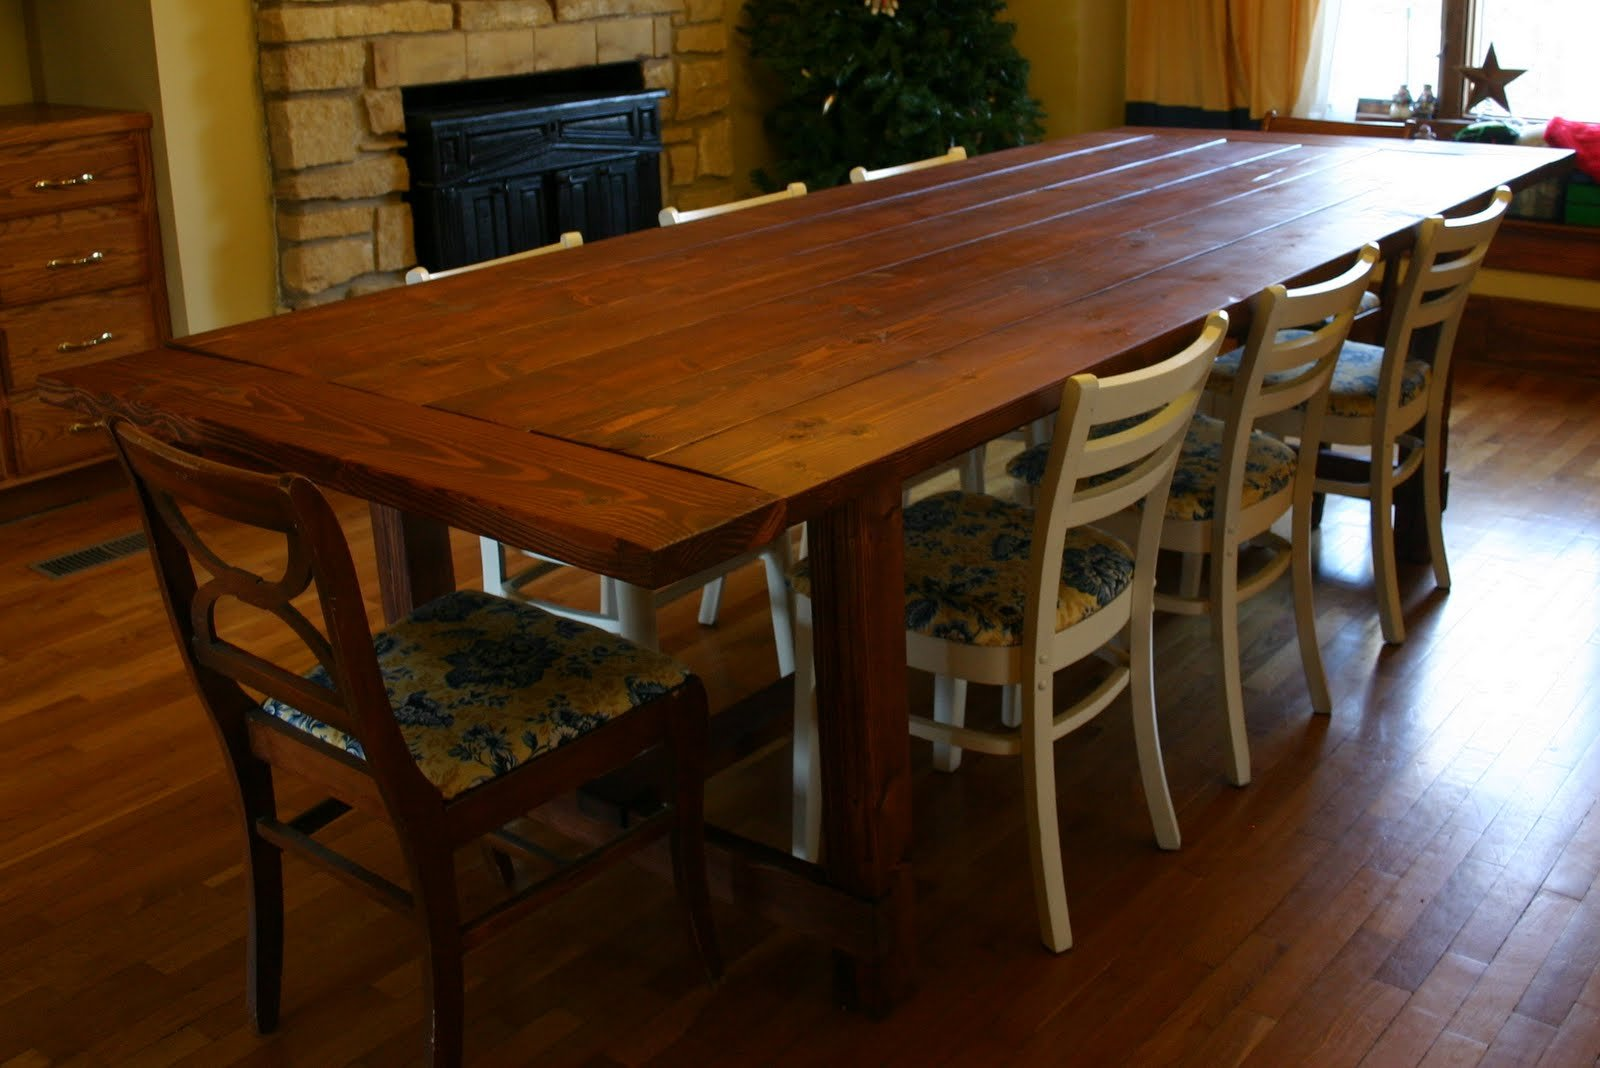 Free dining table plans large and beautiful photos photo to select free dining table plans - Free dining tables ...